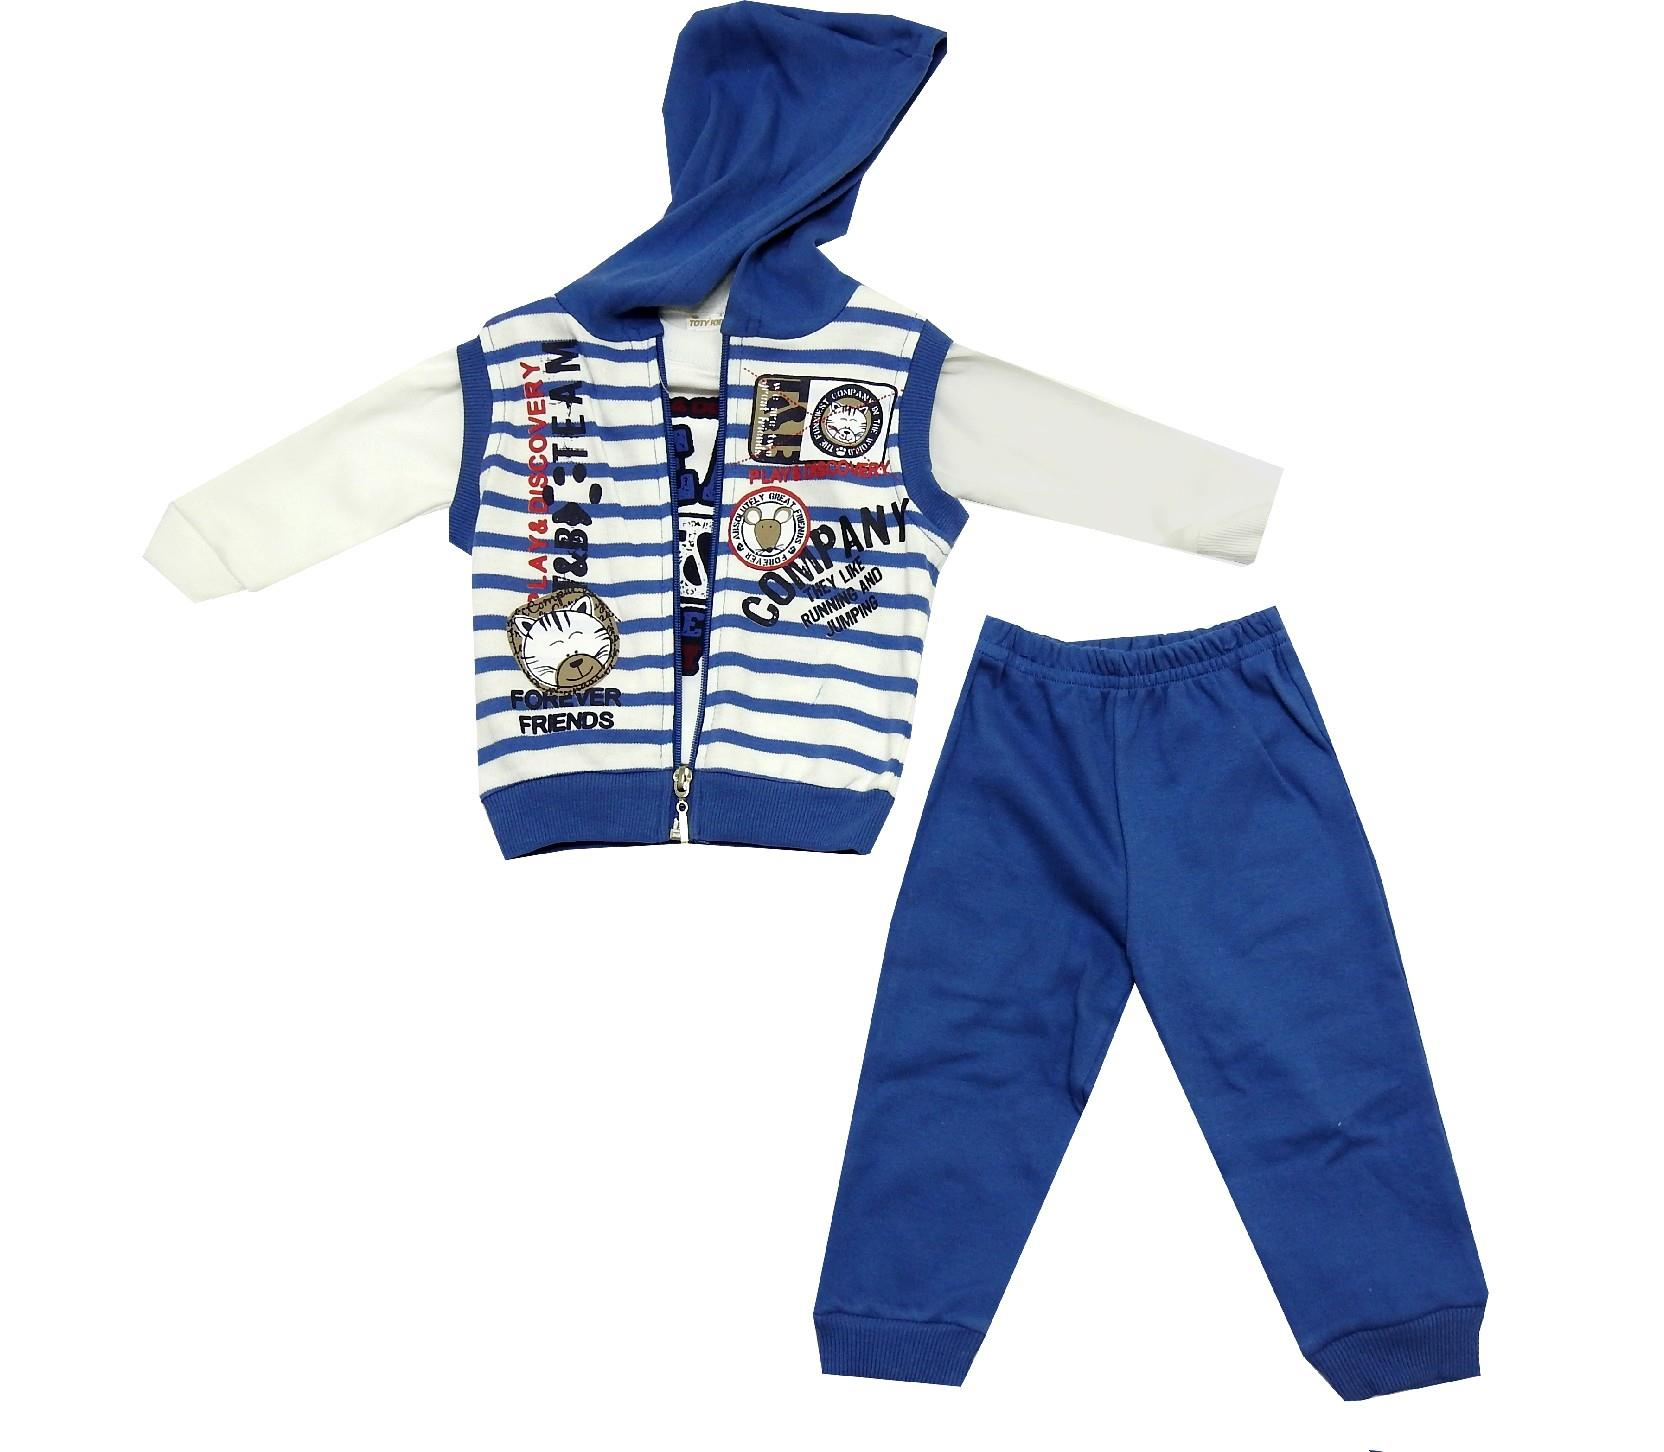 WHOLESALE STRIPED DESIGNED T-SHIRT, WAIST AND TROUSER TRIPLE SET FOR BOY (6-9-12 MONTH)